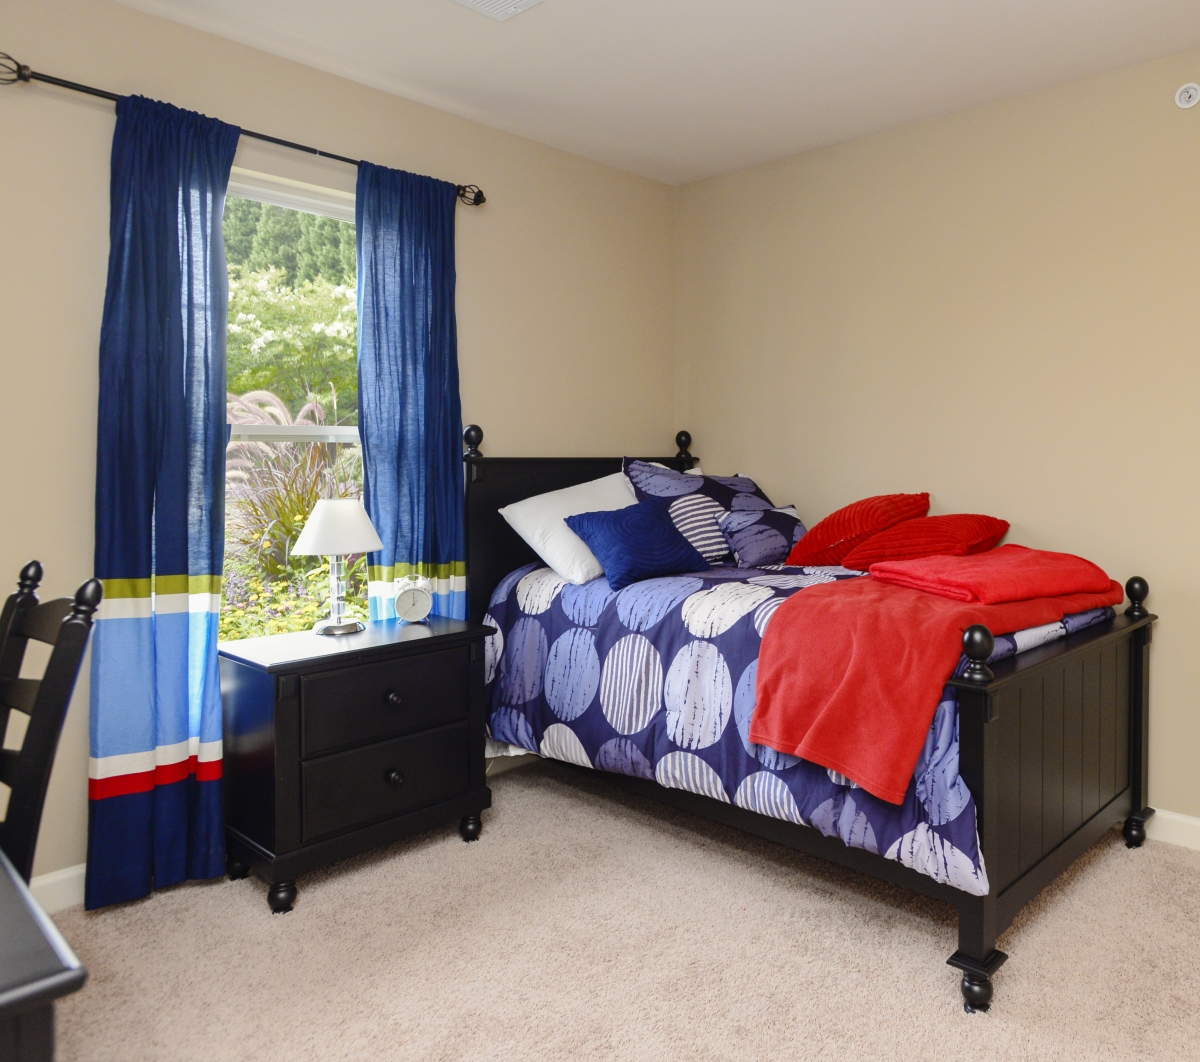 Elegant One Bedroom Apartments In Fayetteville Nc Greensboro One Bedroom .